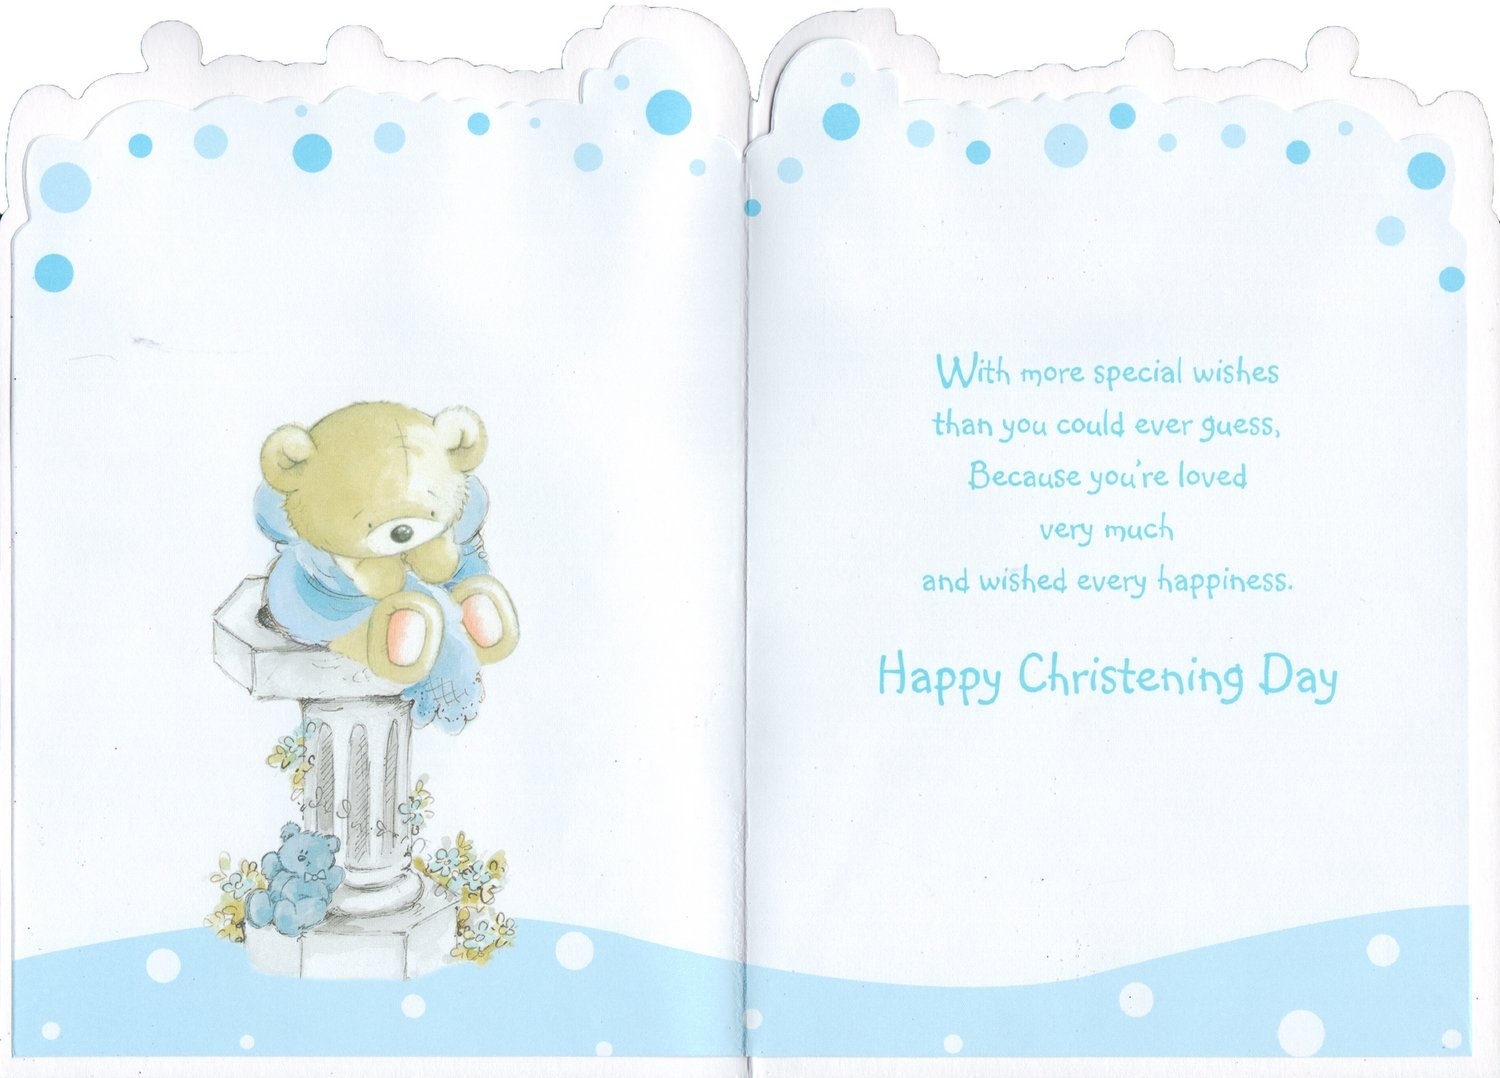 Grandson christening card christening to a wonderful grandson grandson christening card christening to a wonderful grandson on your special day amazon garden outdoors kristyandbryce Choice Image